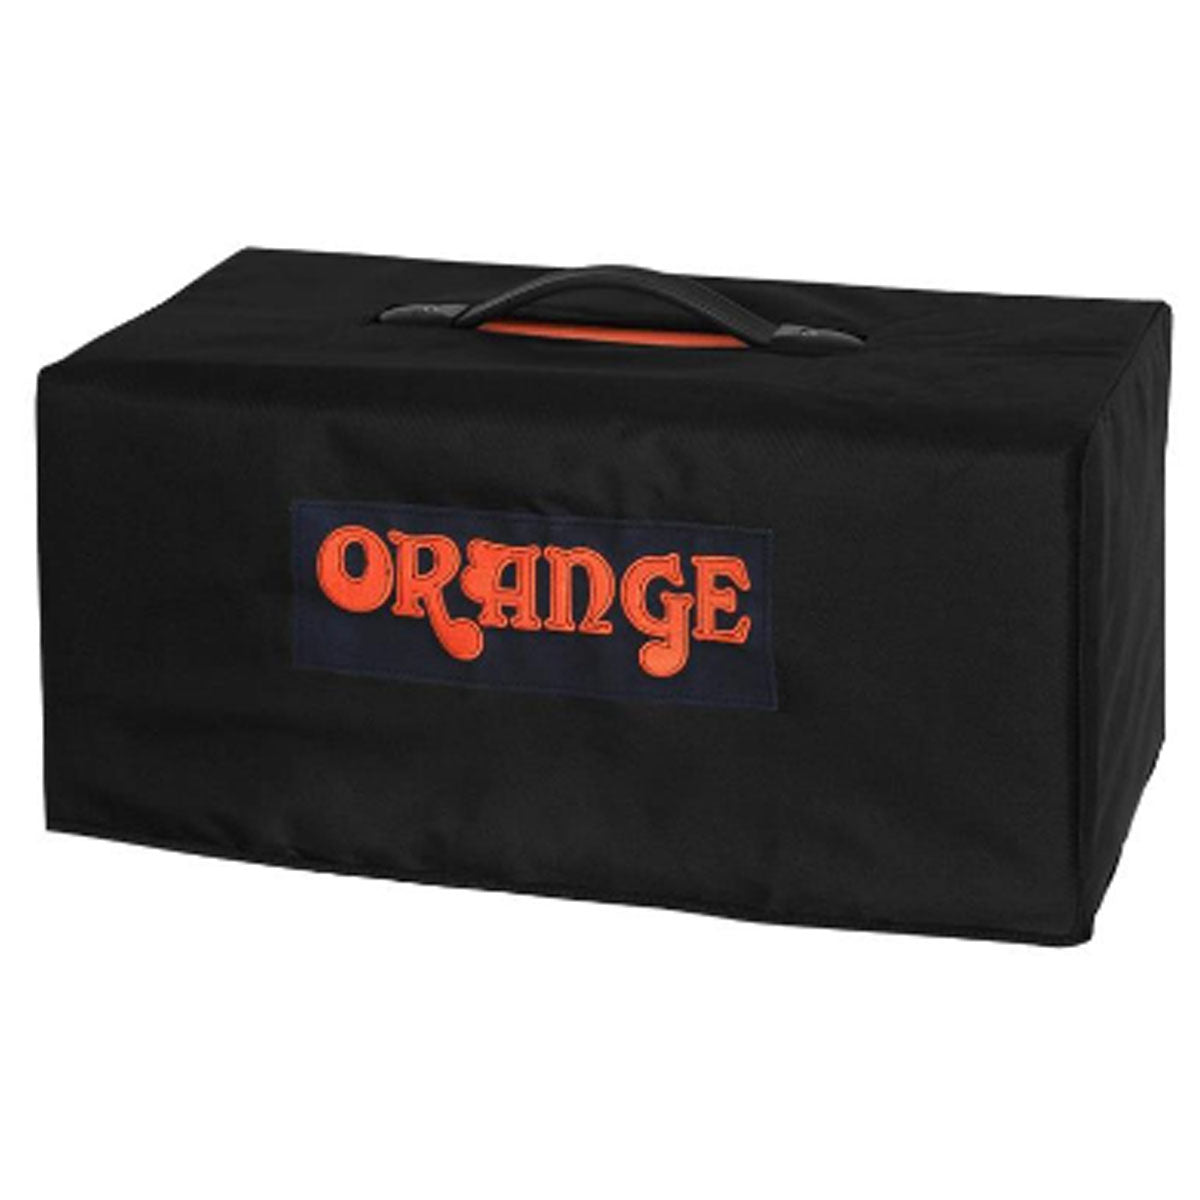 Orange Amplifier Cover 412AD Cab Cover for 4x12inch Cabinet